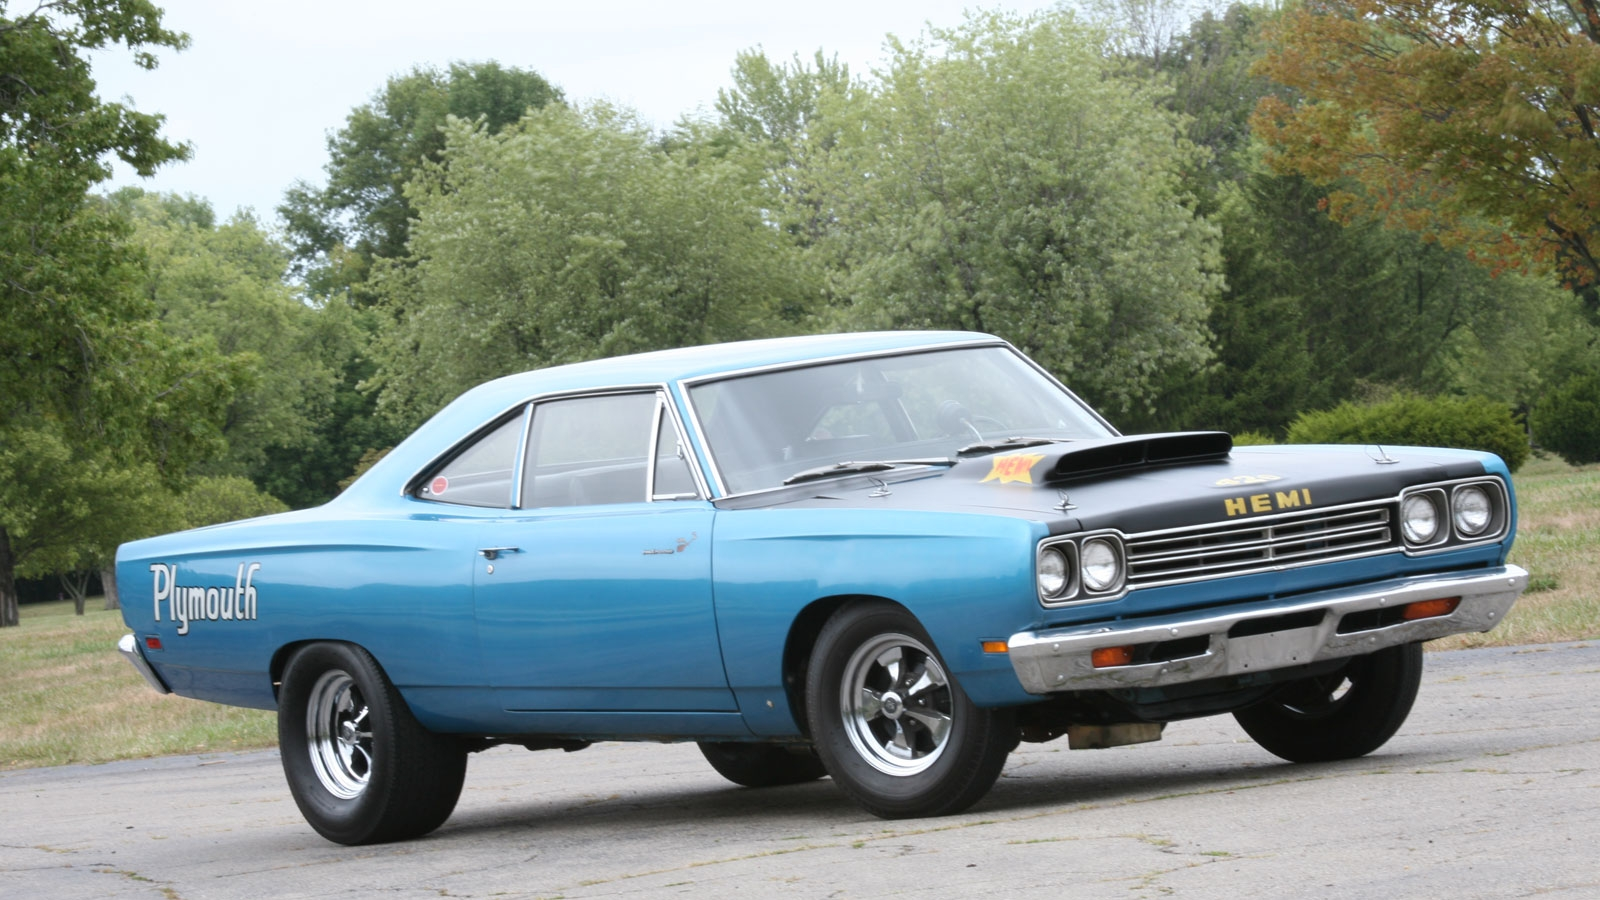 1080p Muscle Car Wallpaper 11 Plymouth Road Runner Hd Wallpapers Backgrounds